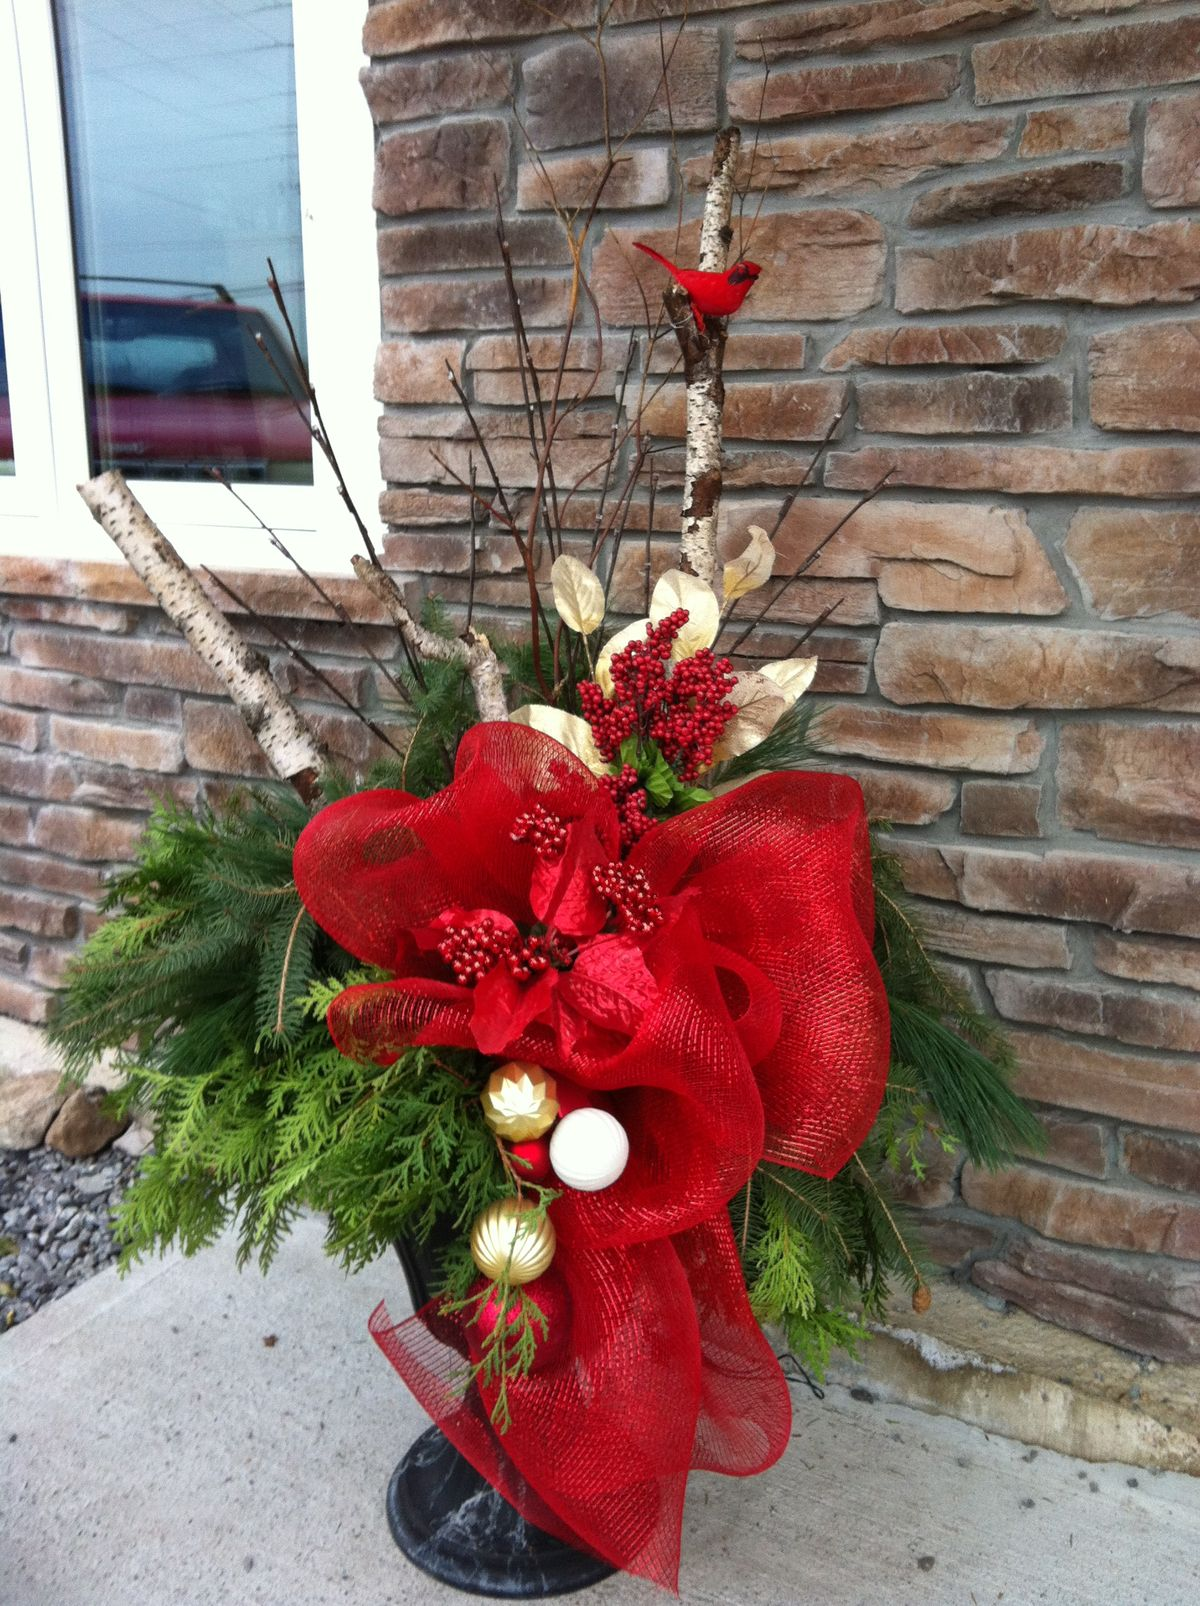 1000+ images about Christmas garden planters on Pinterest ...